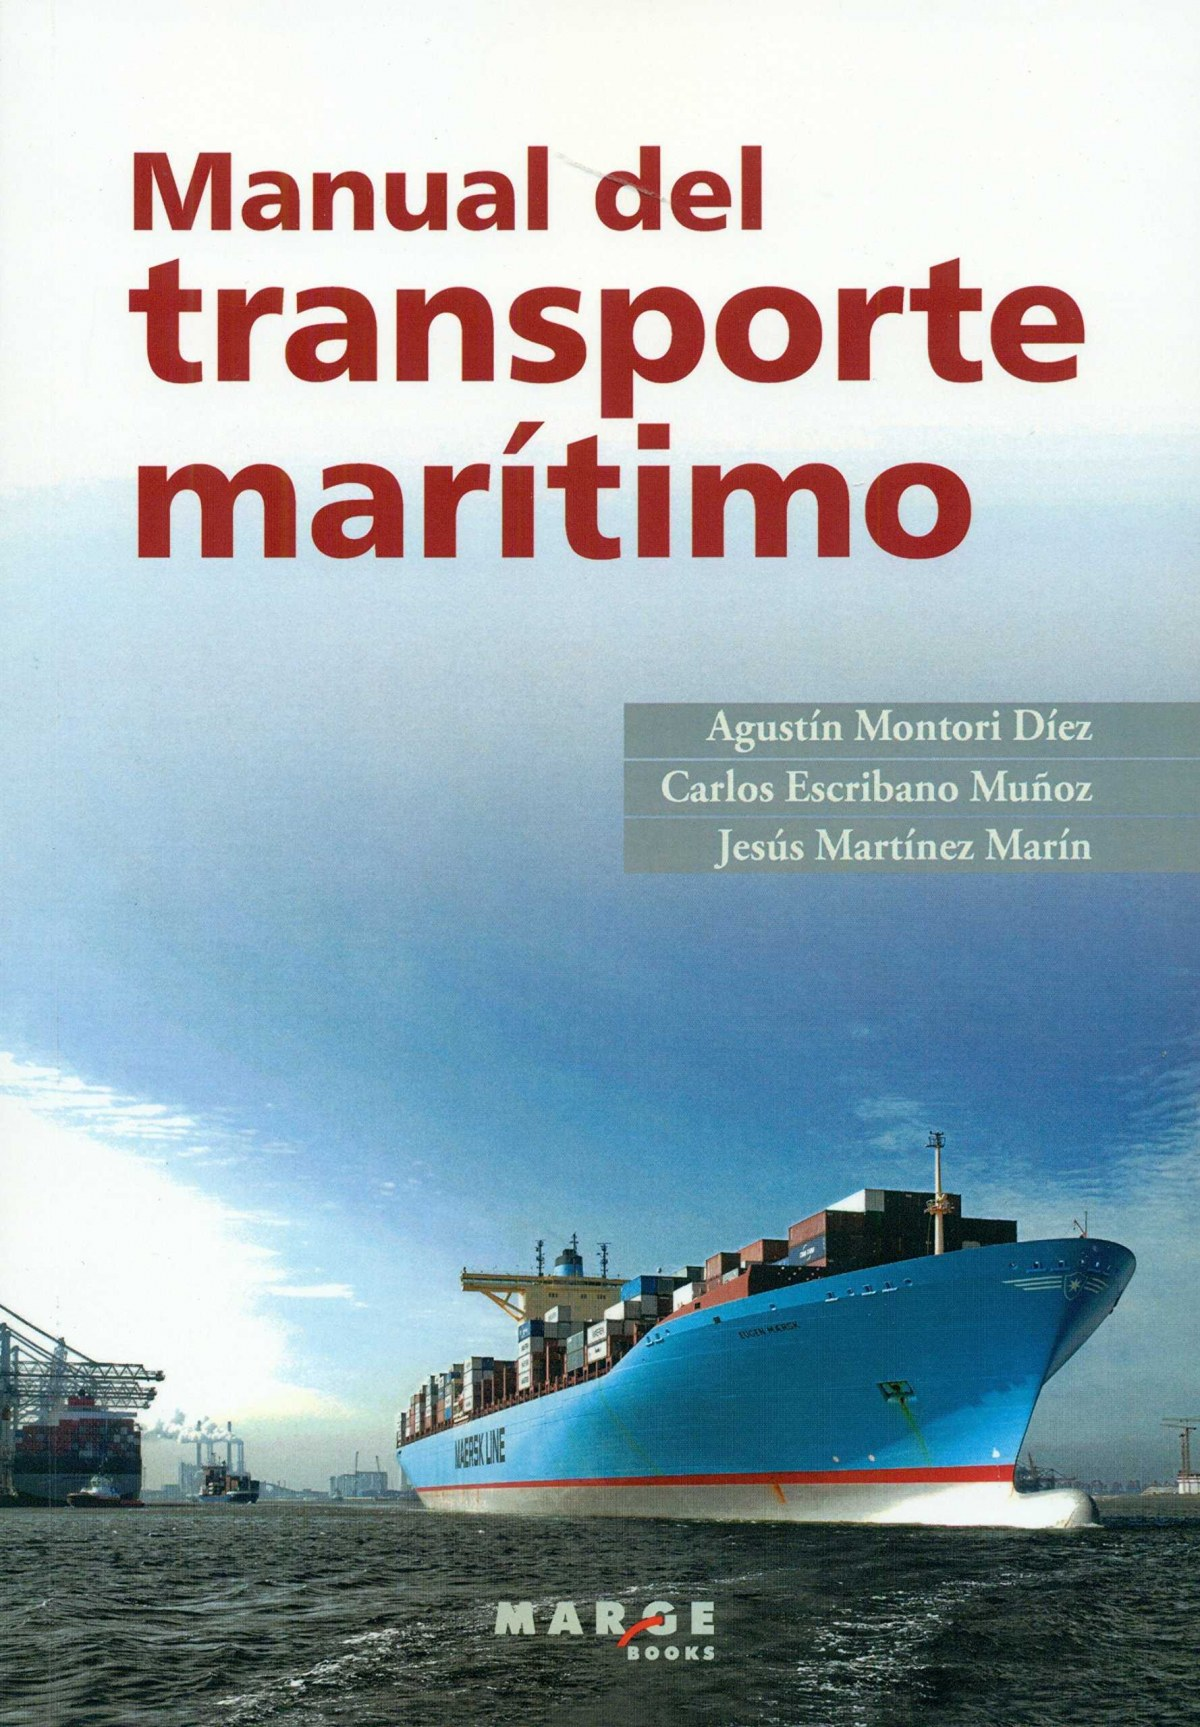 Manual del transporte mar¡timo 9788415340317